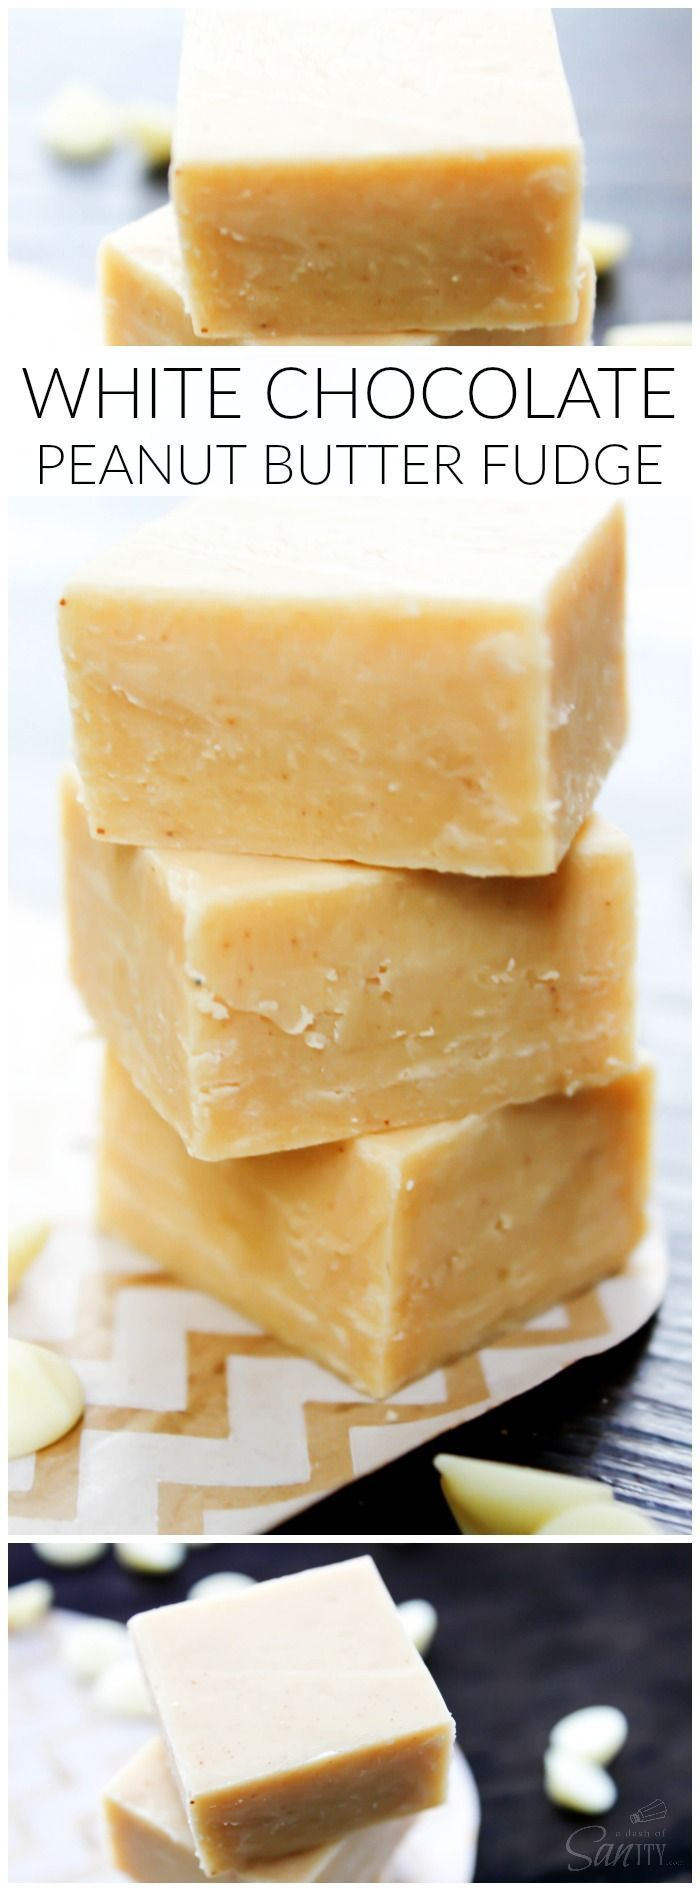 White Chocolate Peanut Butter Fudge LONG PIN